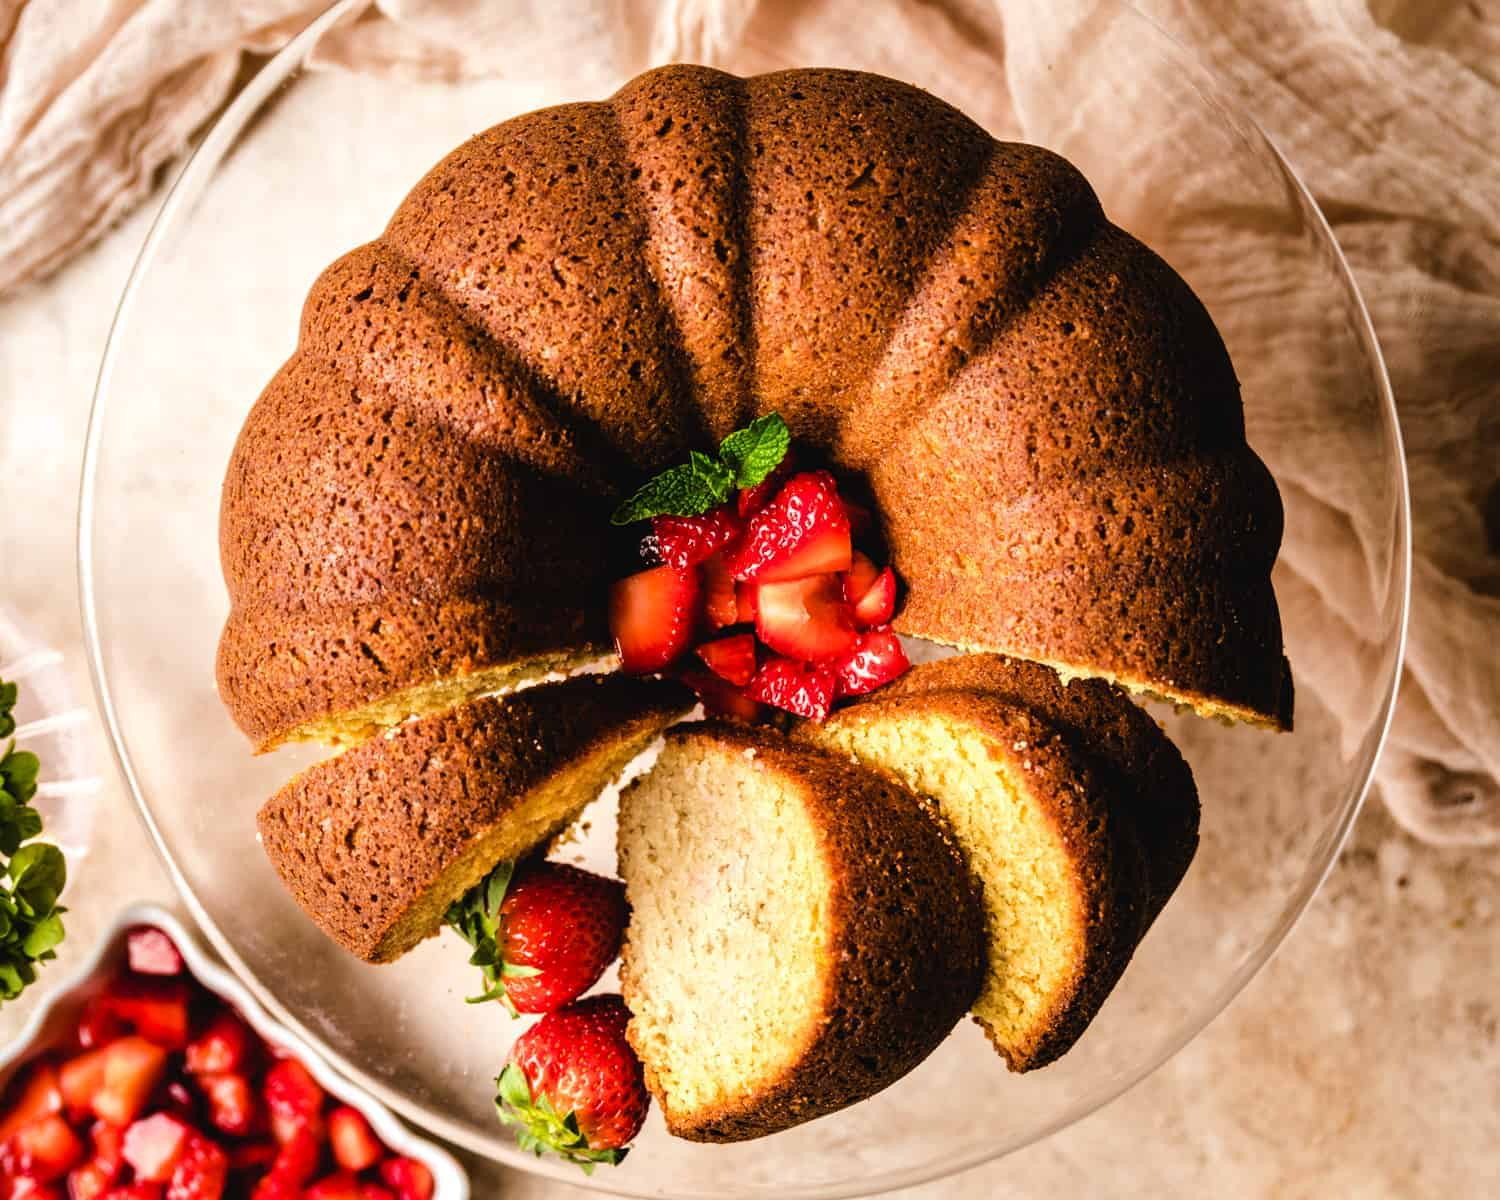 bundt cake on a glass cake stand with slices and strawberries